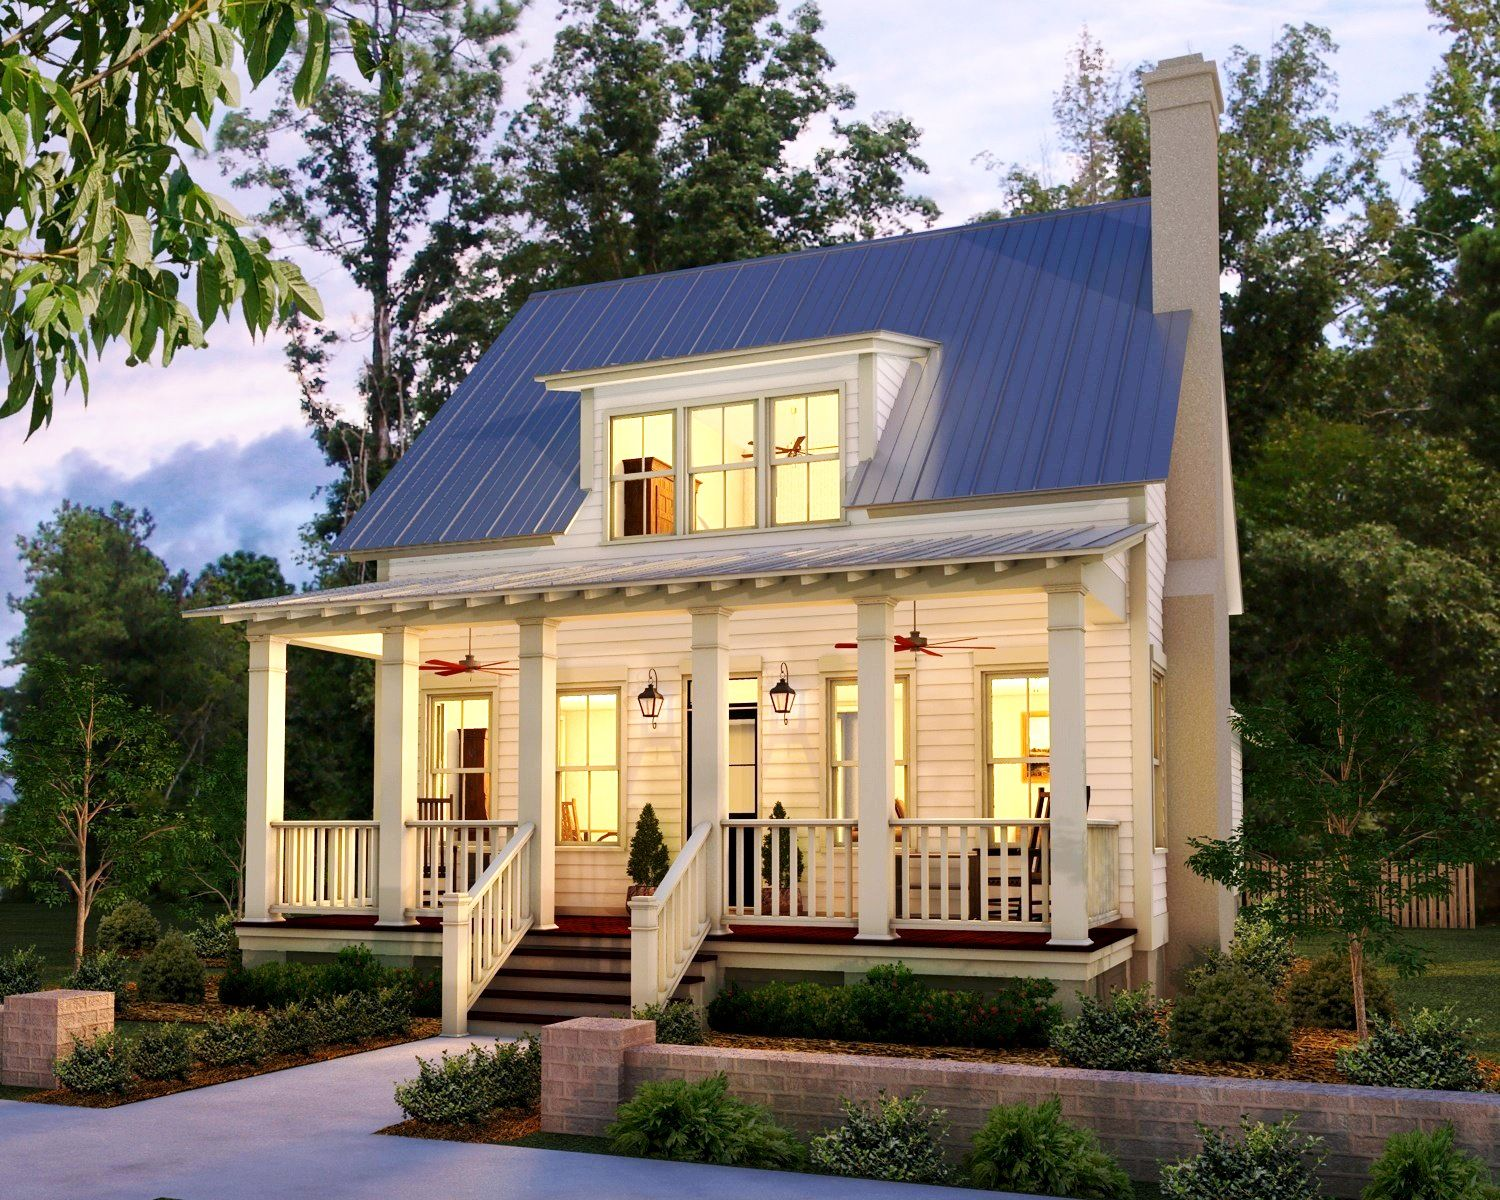 Saluda river club collection of homes columbia sc for Small metal homes for sale